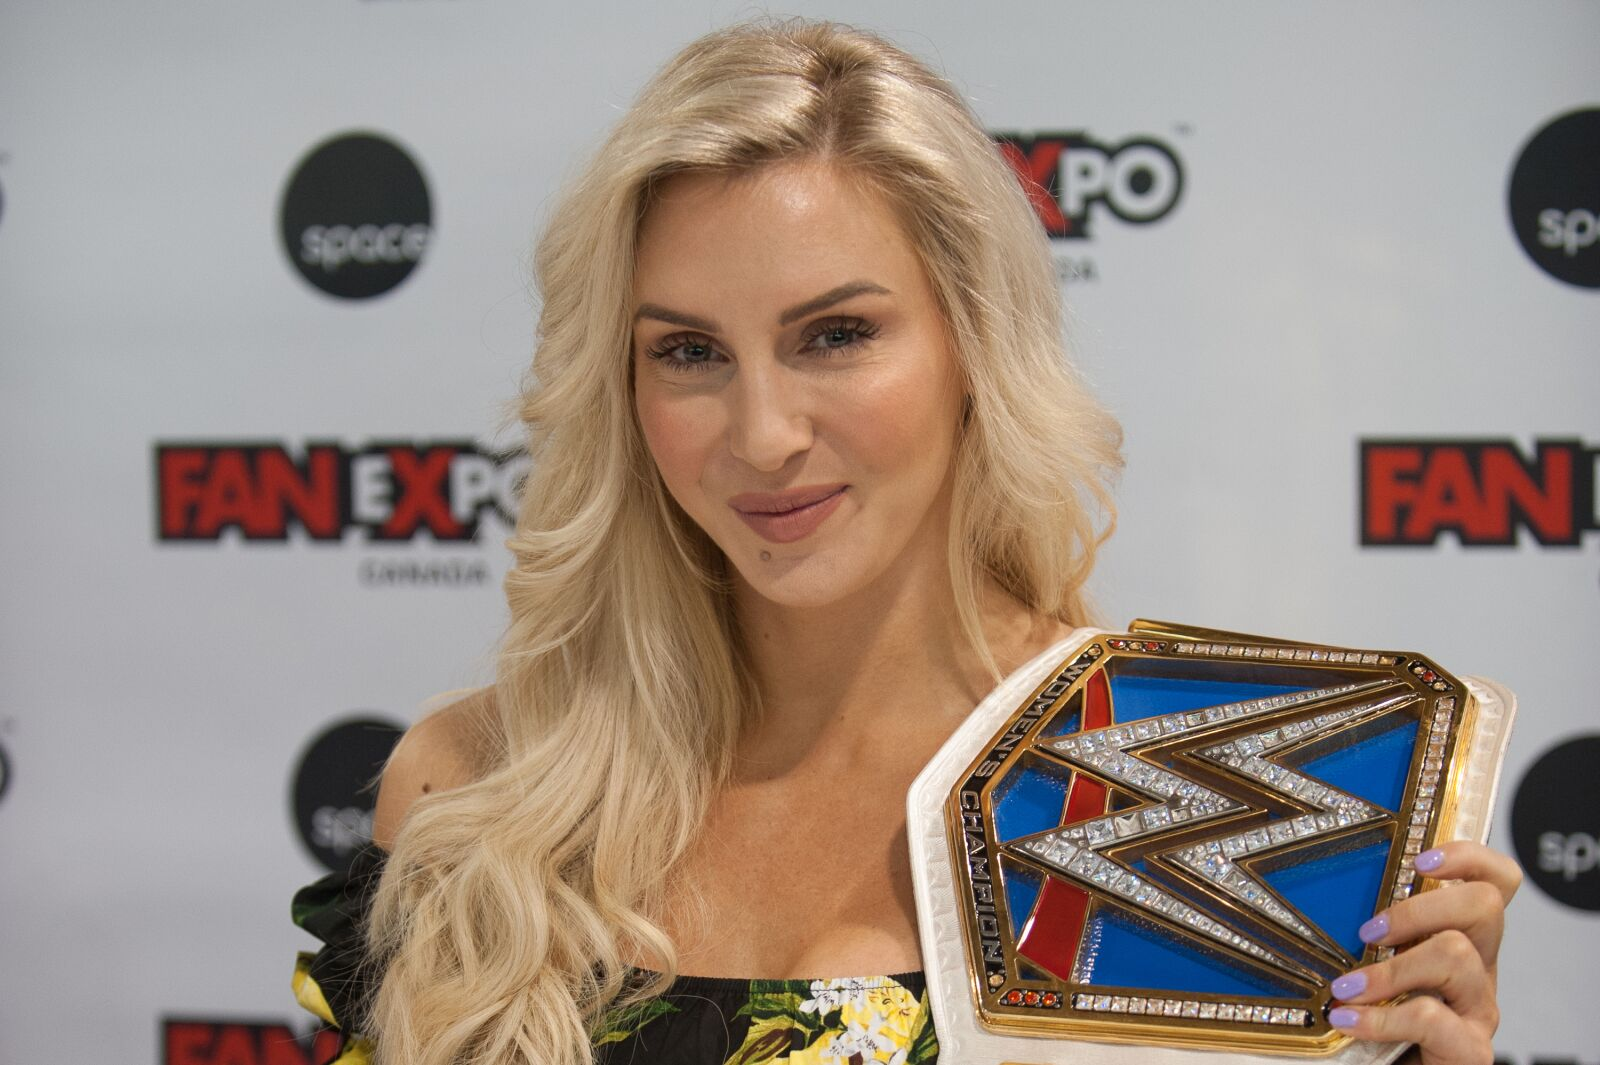 WWE fans react to Charlotte Flair becoming a 10-time champion